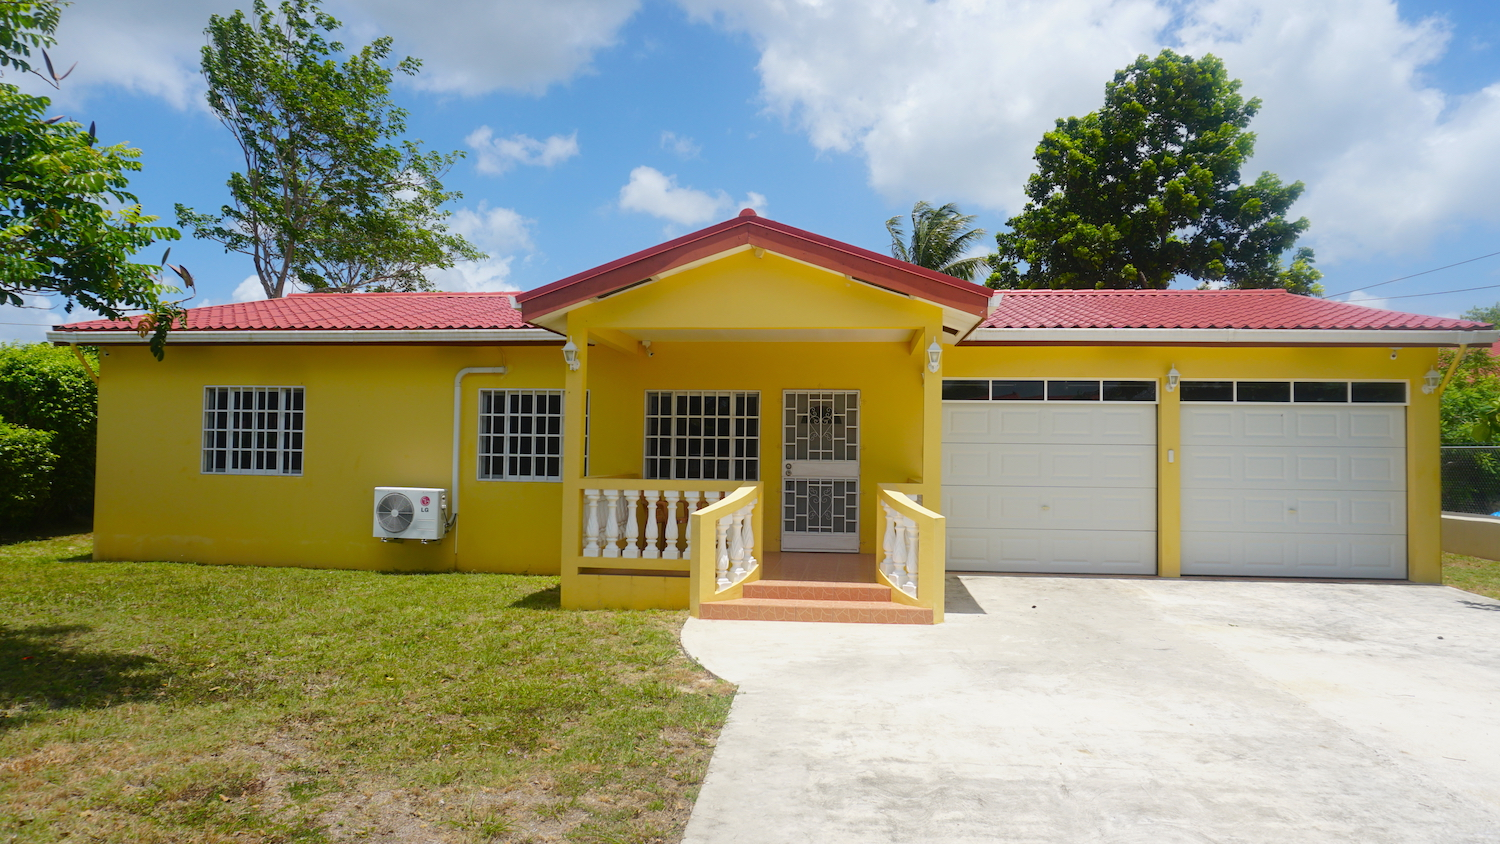 3 Bedroom 2 Bath Home at 12 Miles Phillip Goldson Highway For Rent